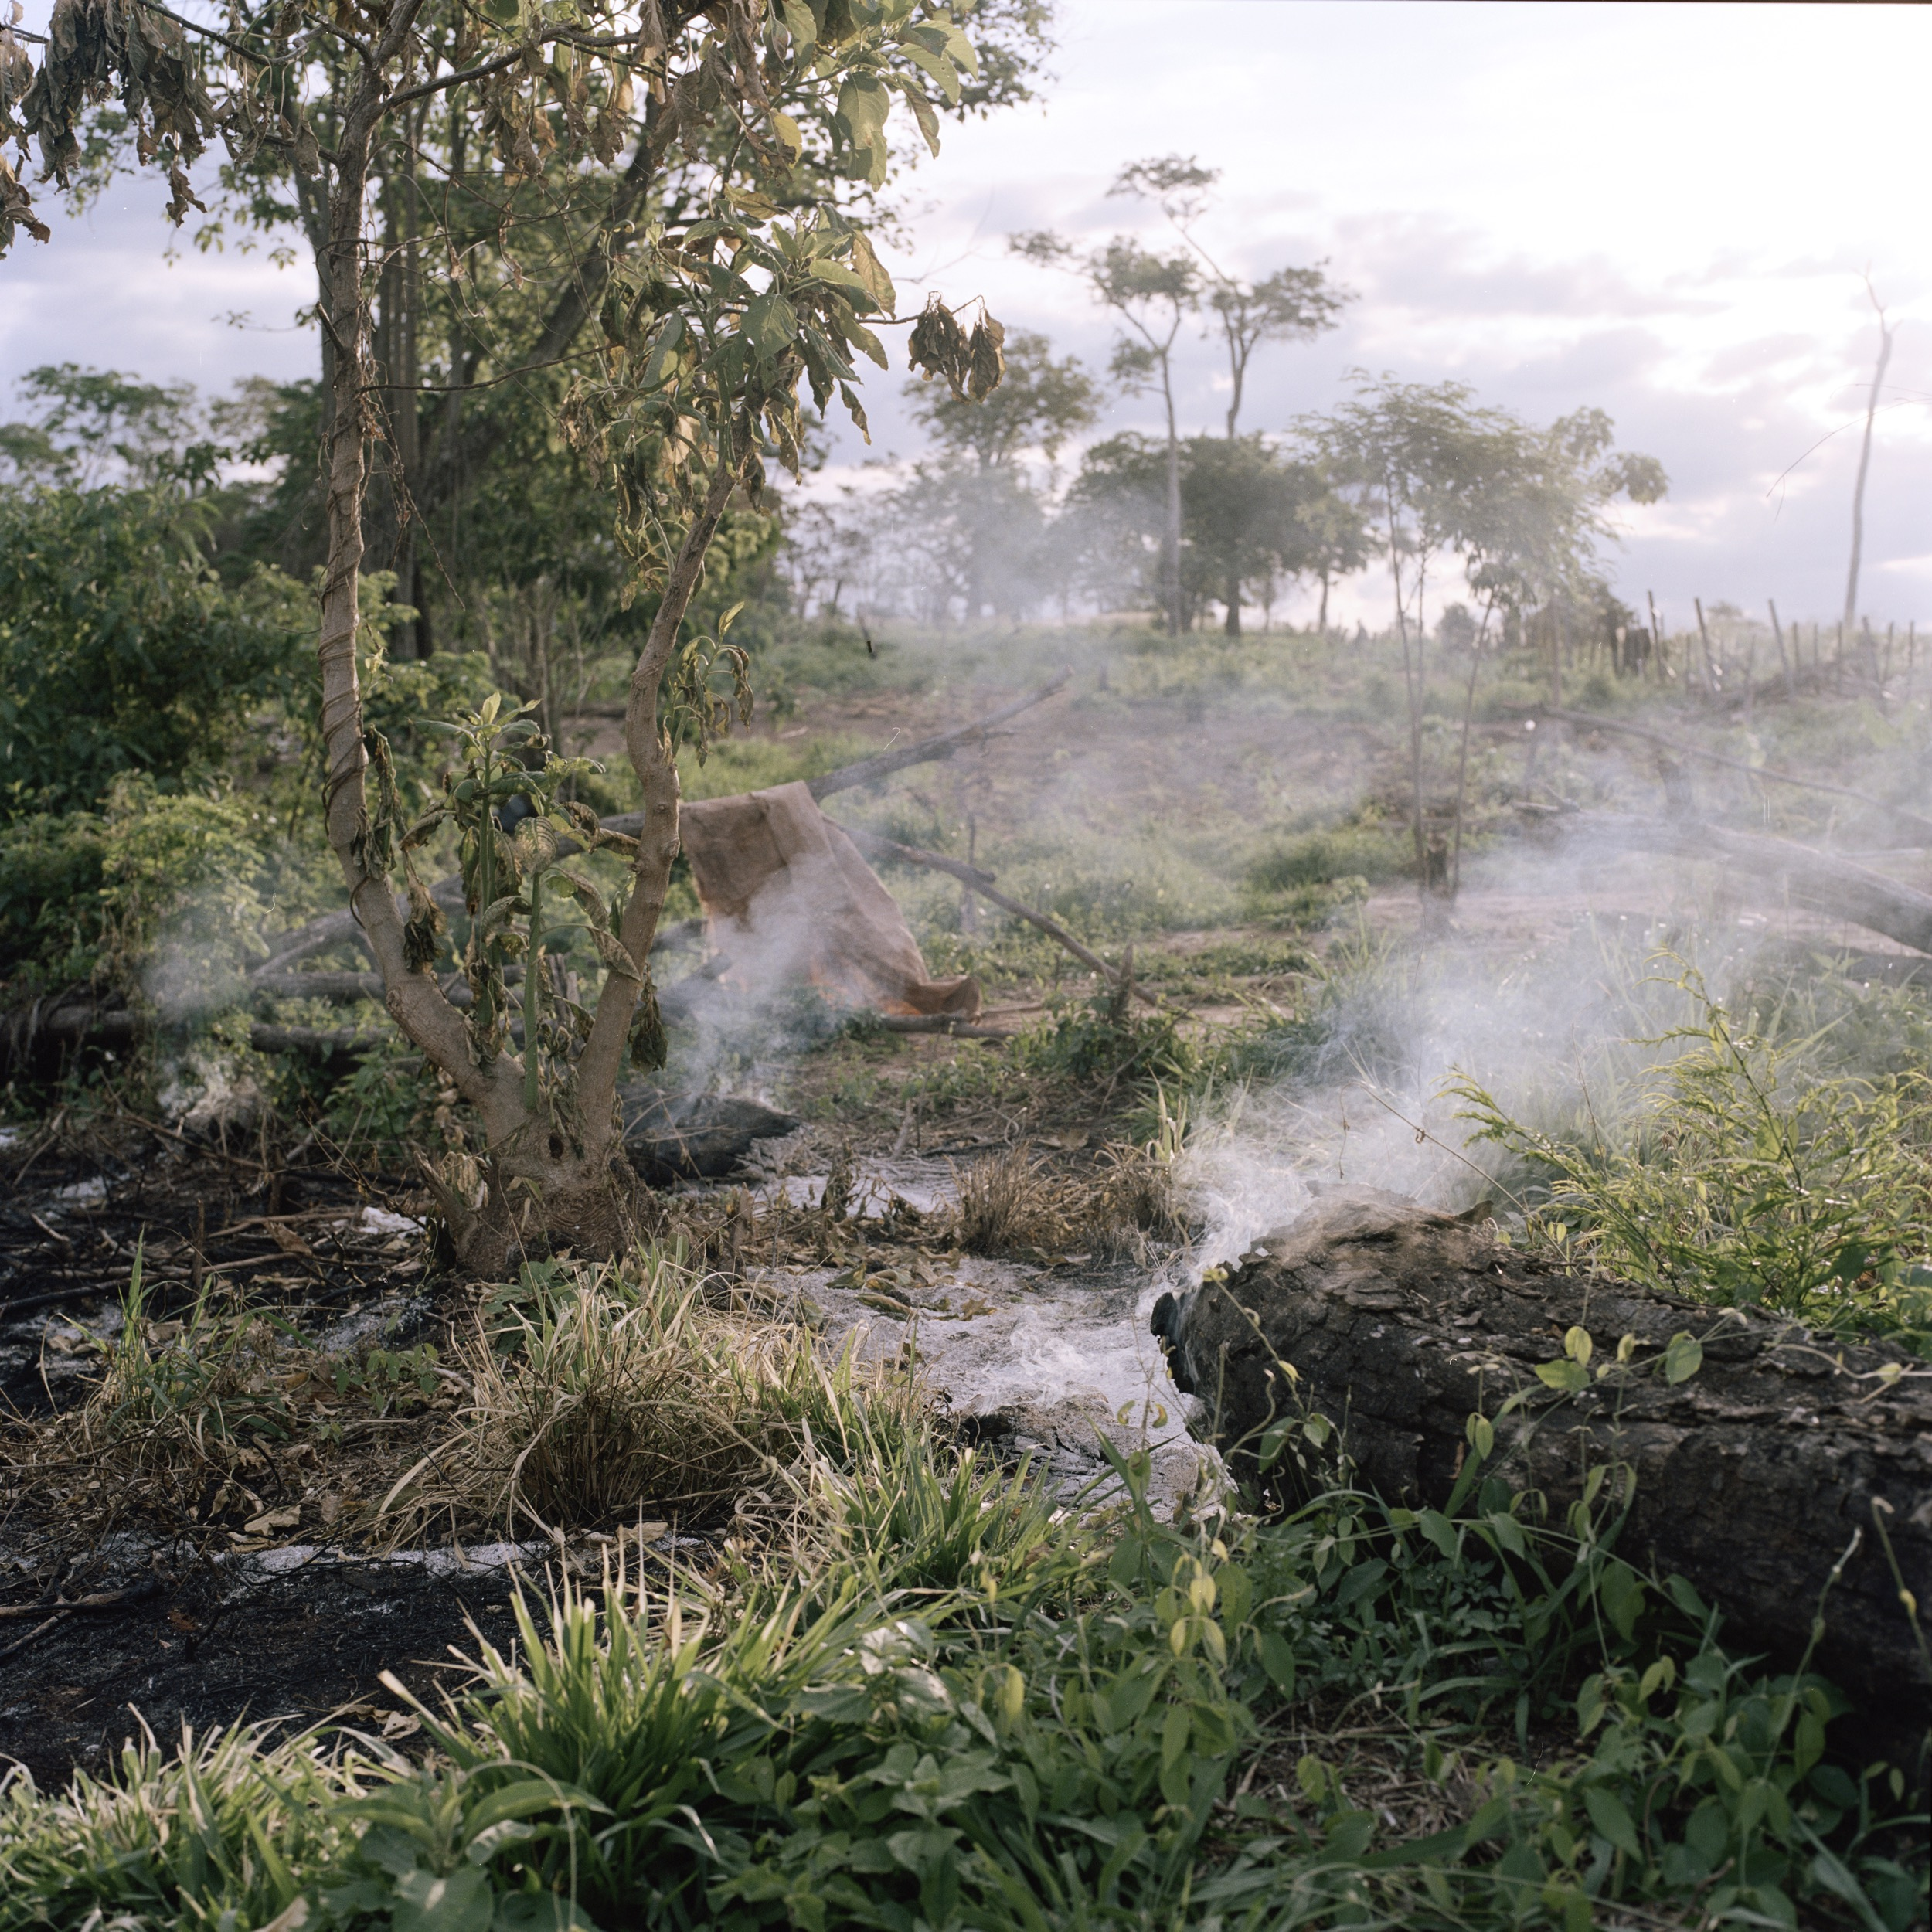 Burned traces of Guayaqui Cuá community after its eviction two days before.